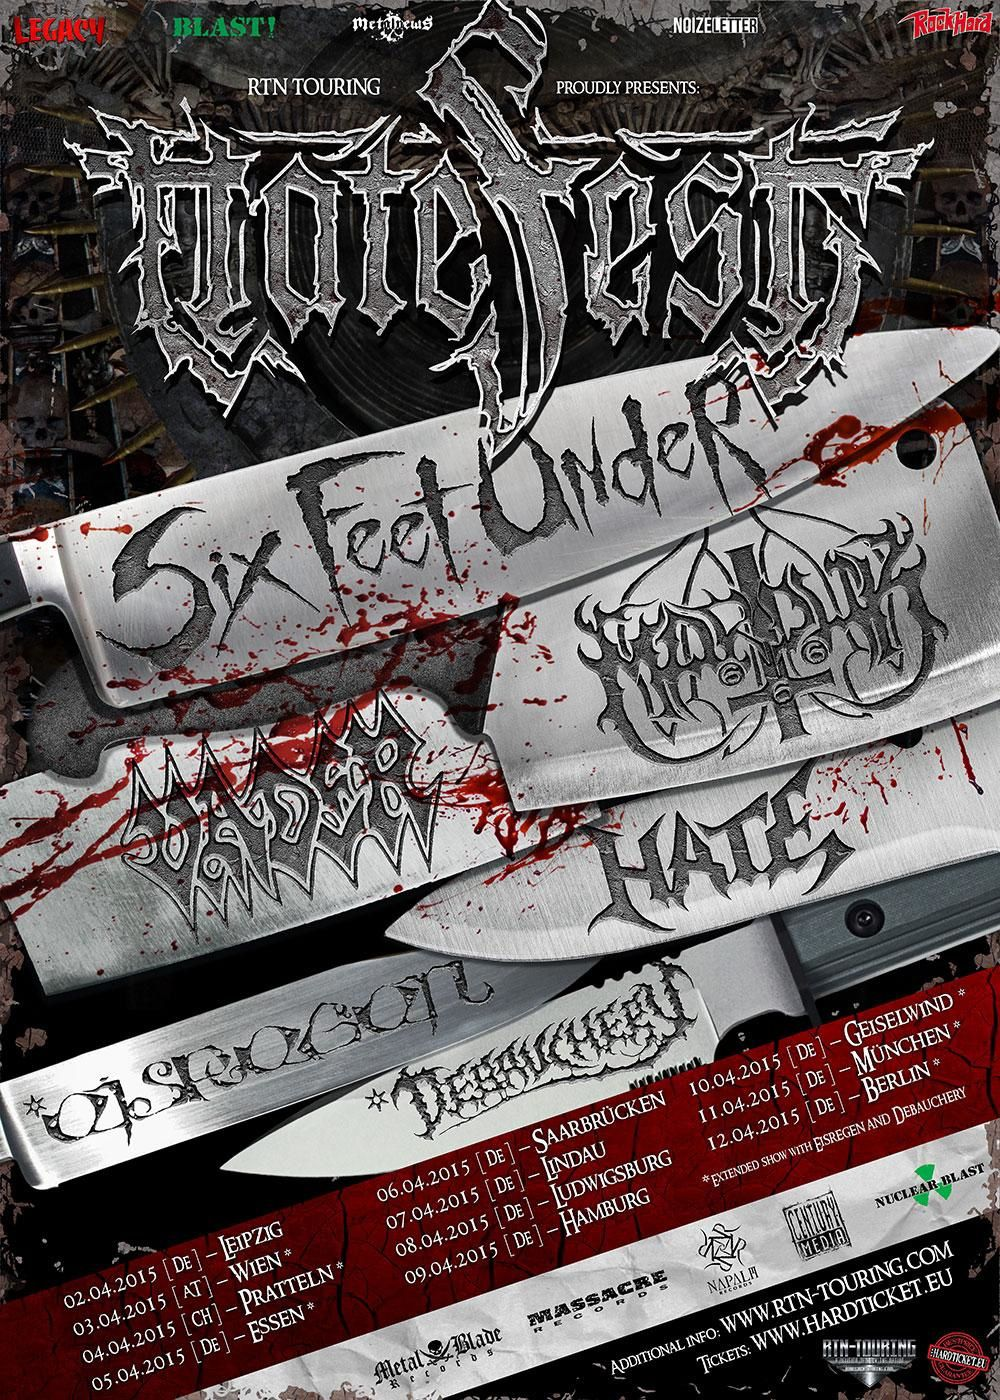 Hatefest dates 2015 - with SIX FEET UNDER, VADER and more